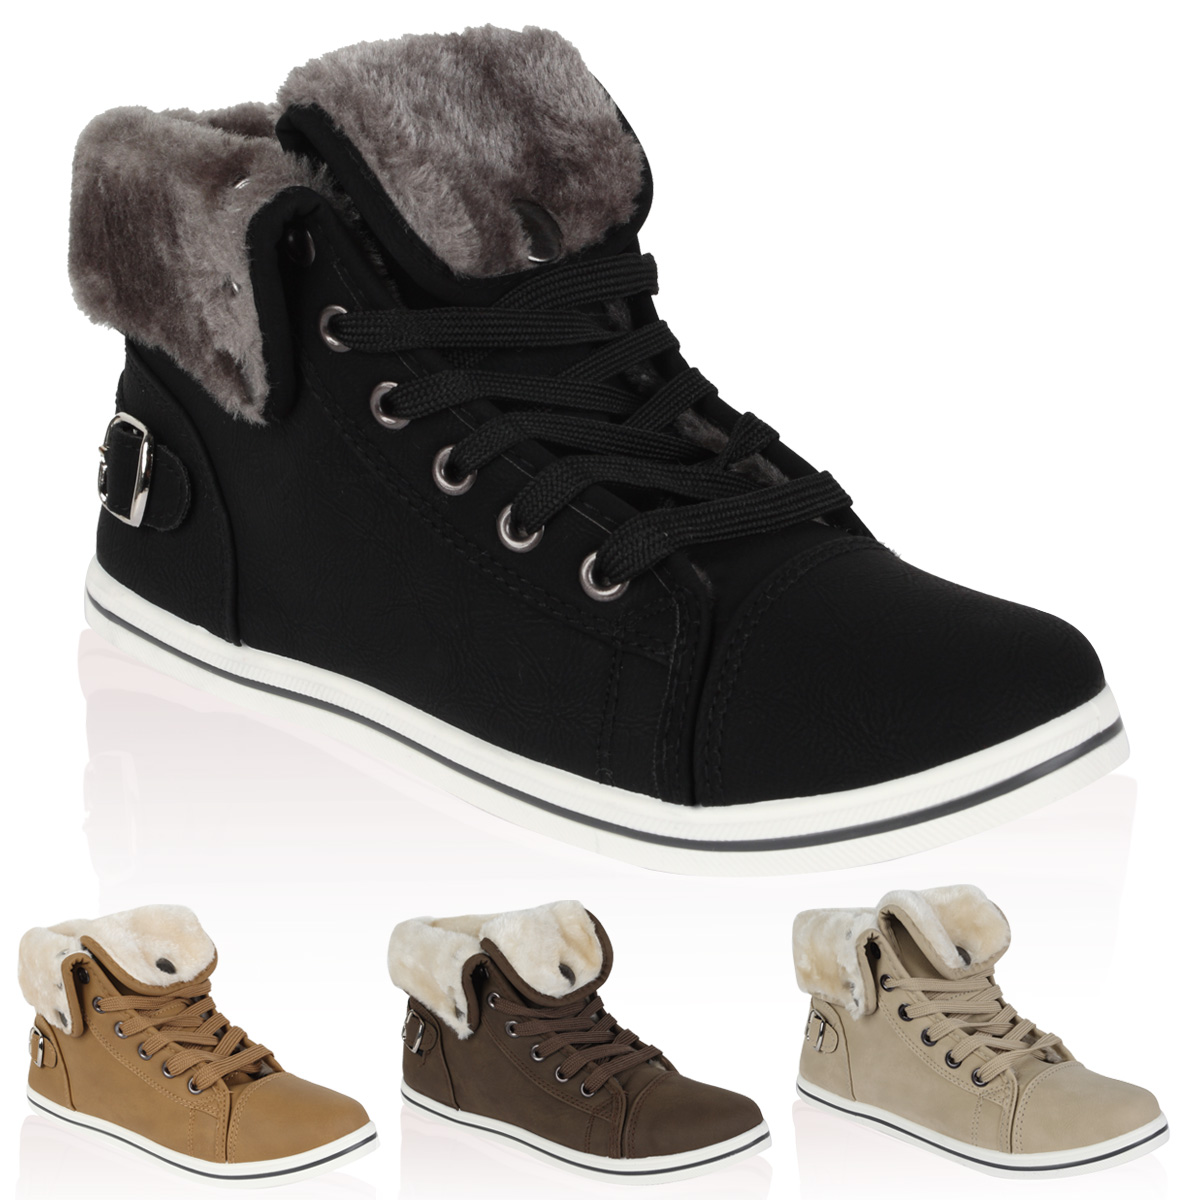 Winter shoes for womens Women clothing stores